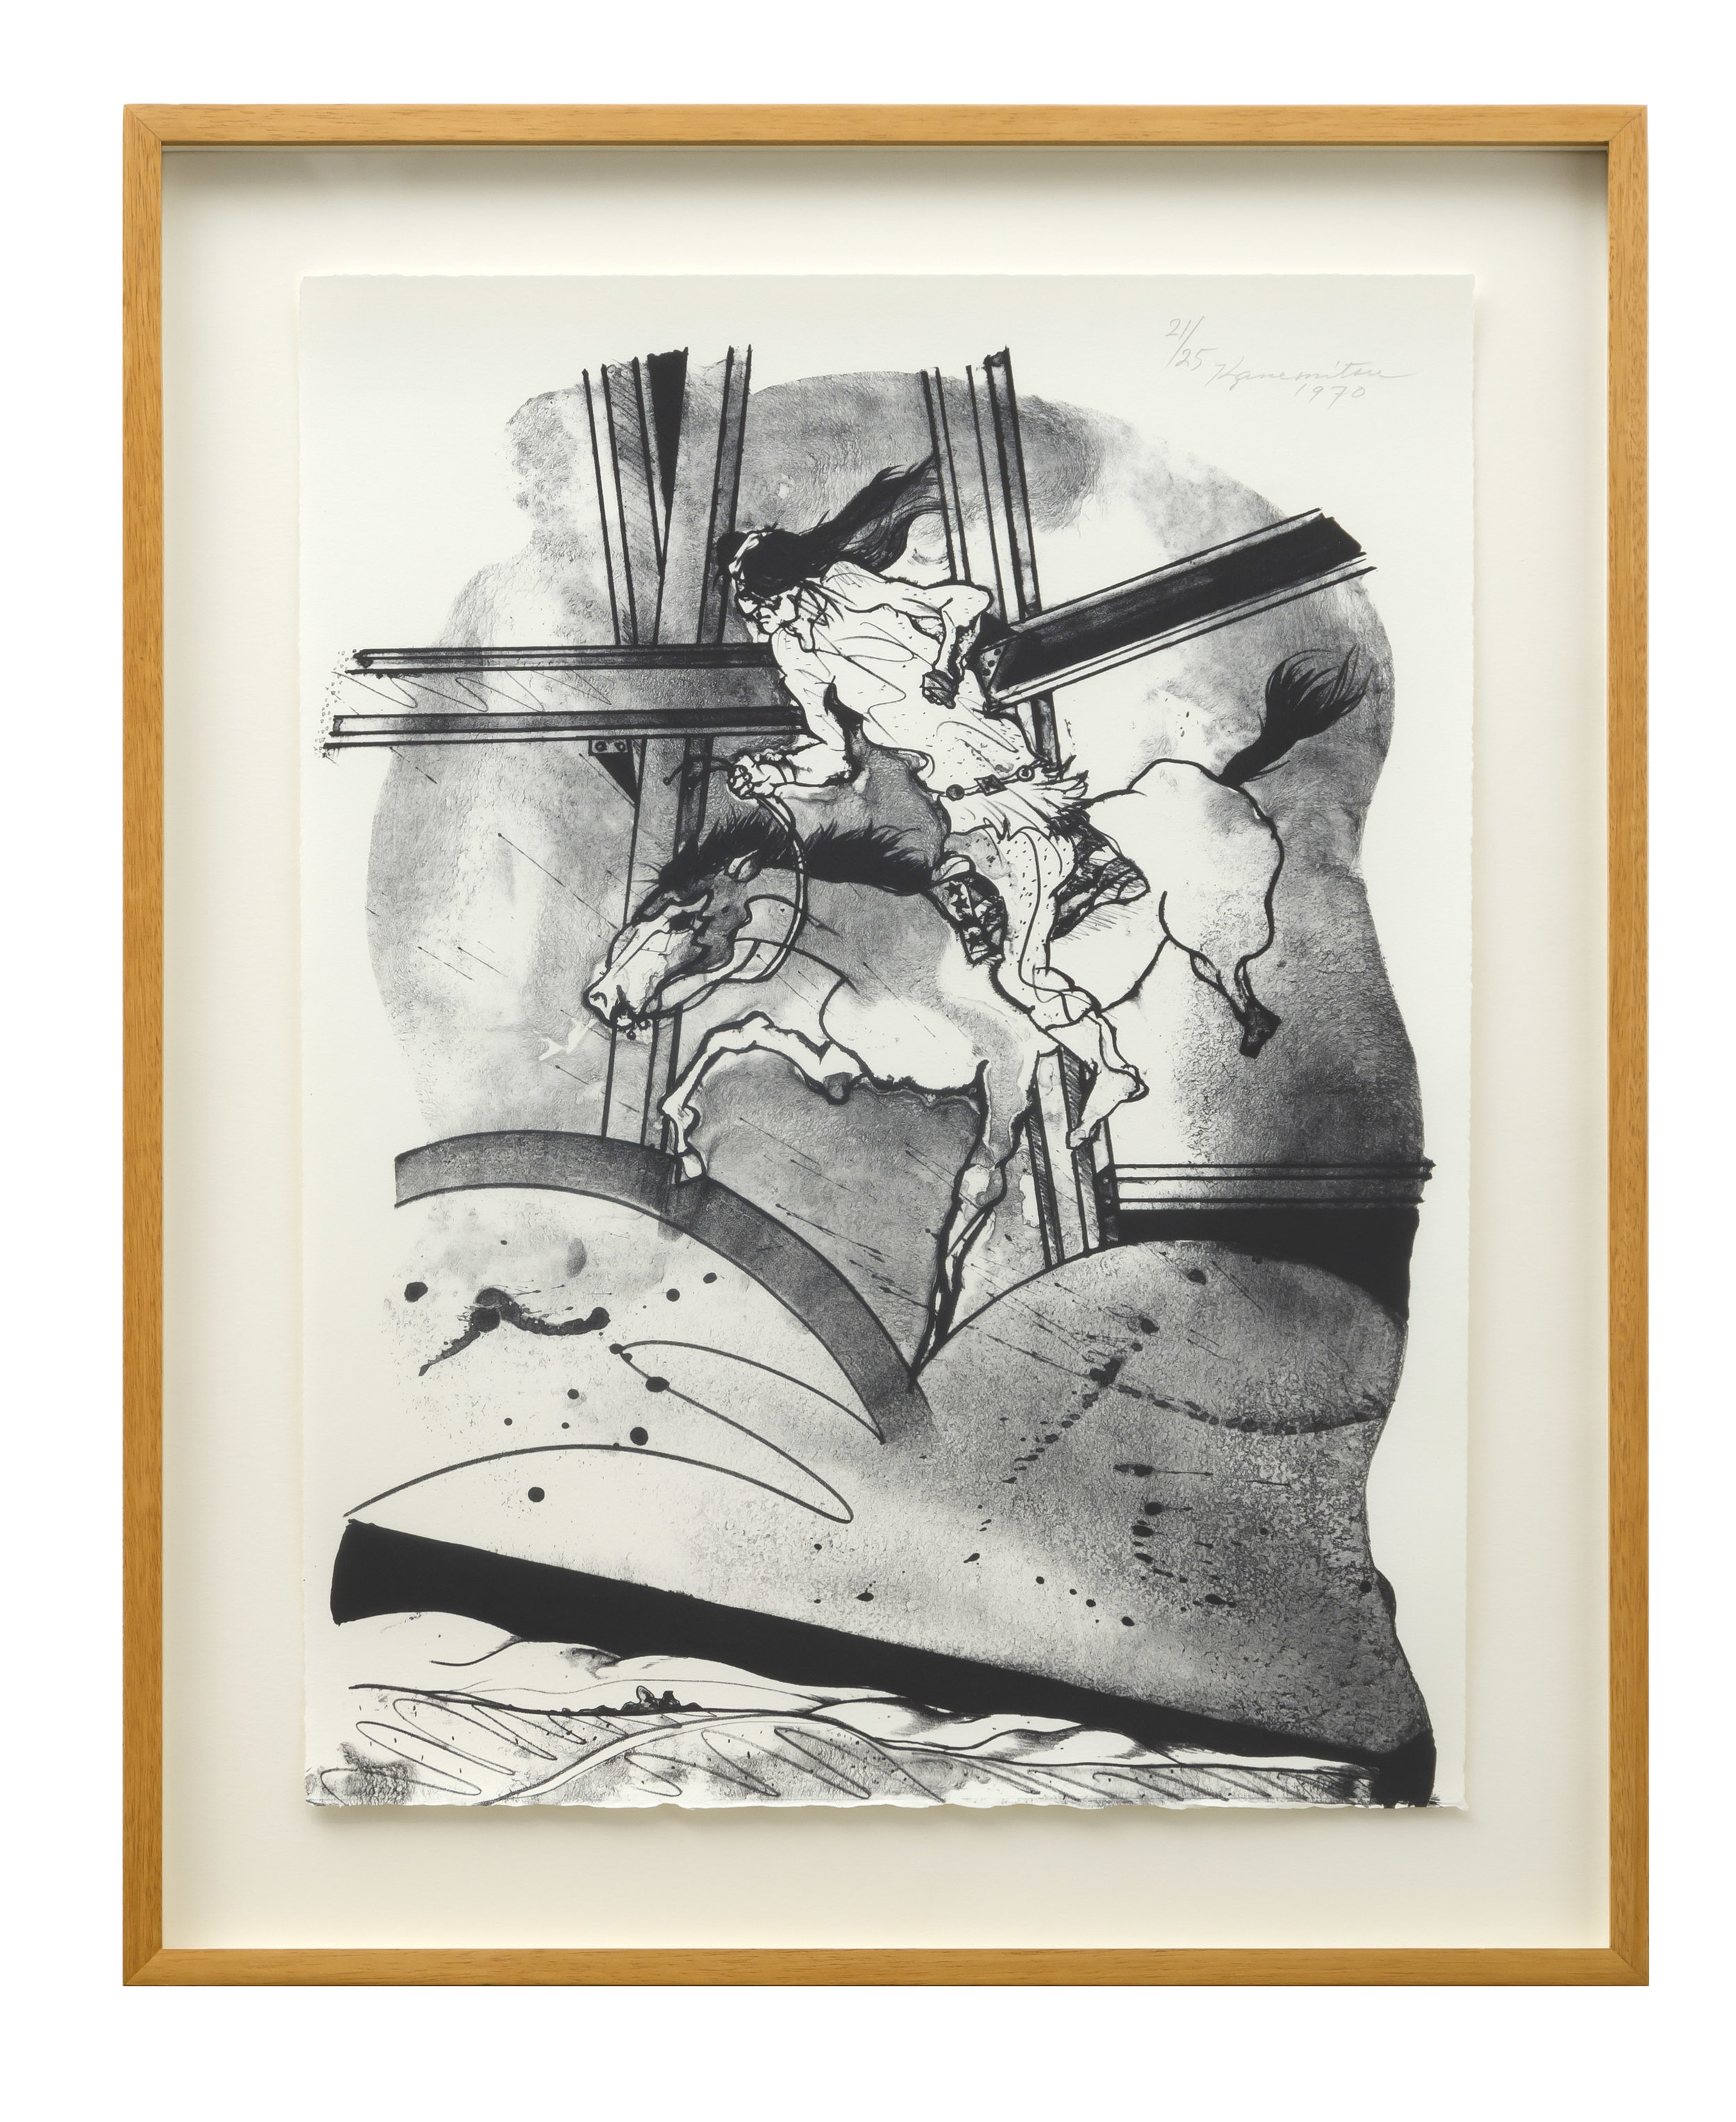 Metamorphosis L.A. I , 1970 Ed. 21/25  lithograph 20 x 15 inches; 50.8 x 38.1 centimeters  $1,200